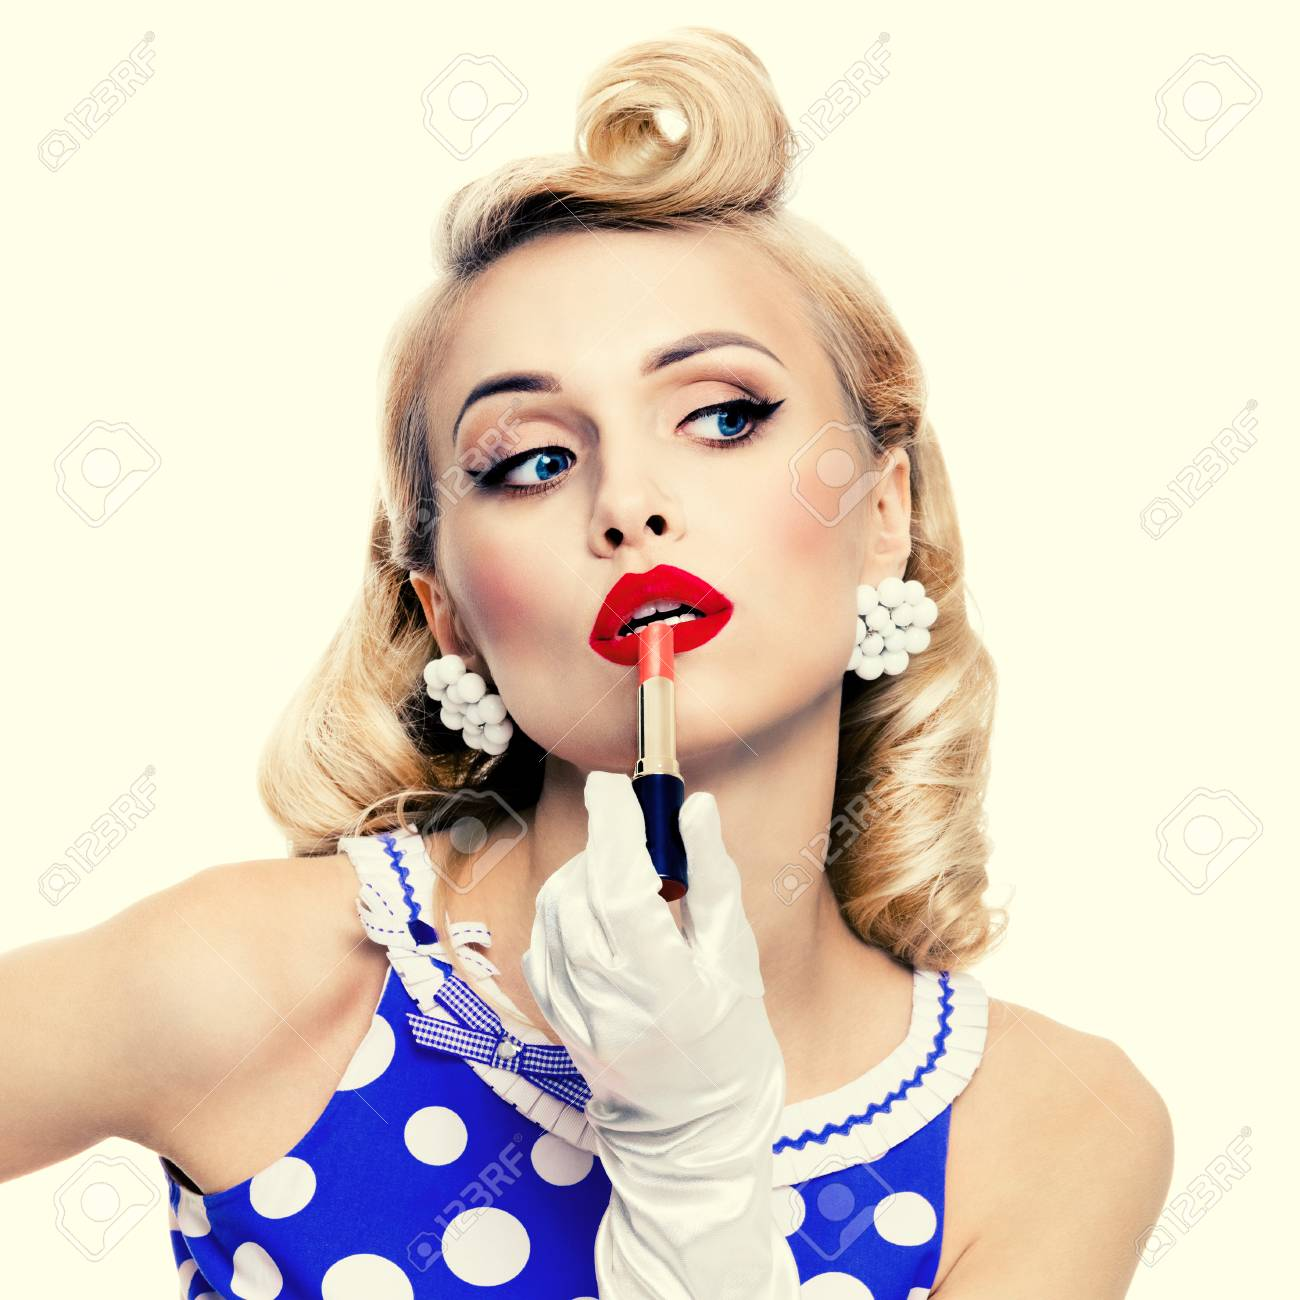 07d2d5d5e Stock Photo - Young blond woman in pin-up style blue dress in polka dot